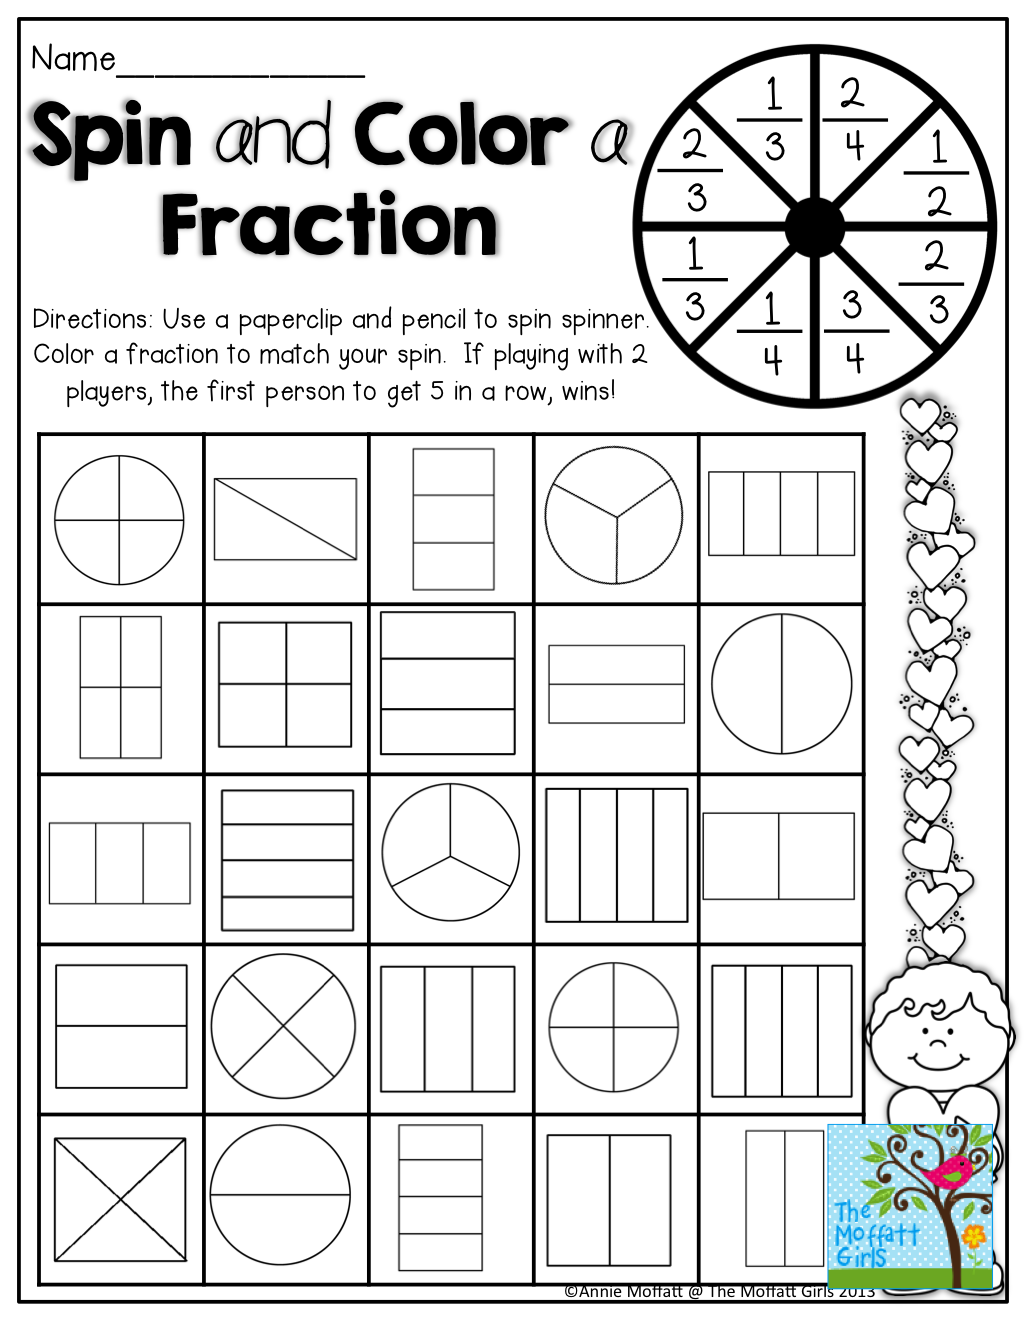 Epic image intended for printable fractions games